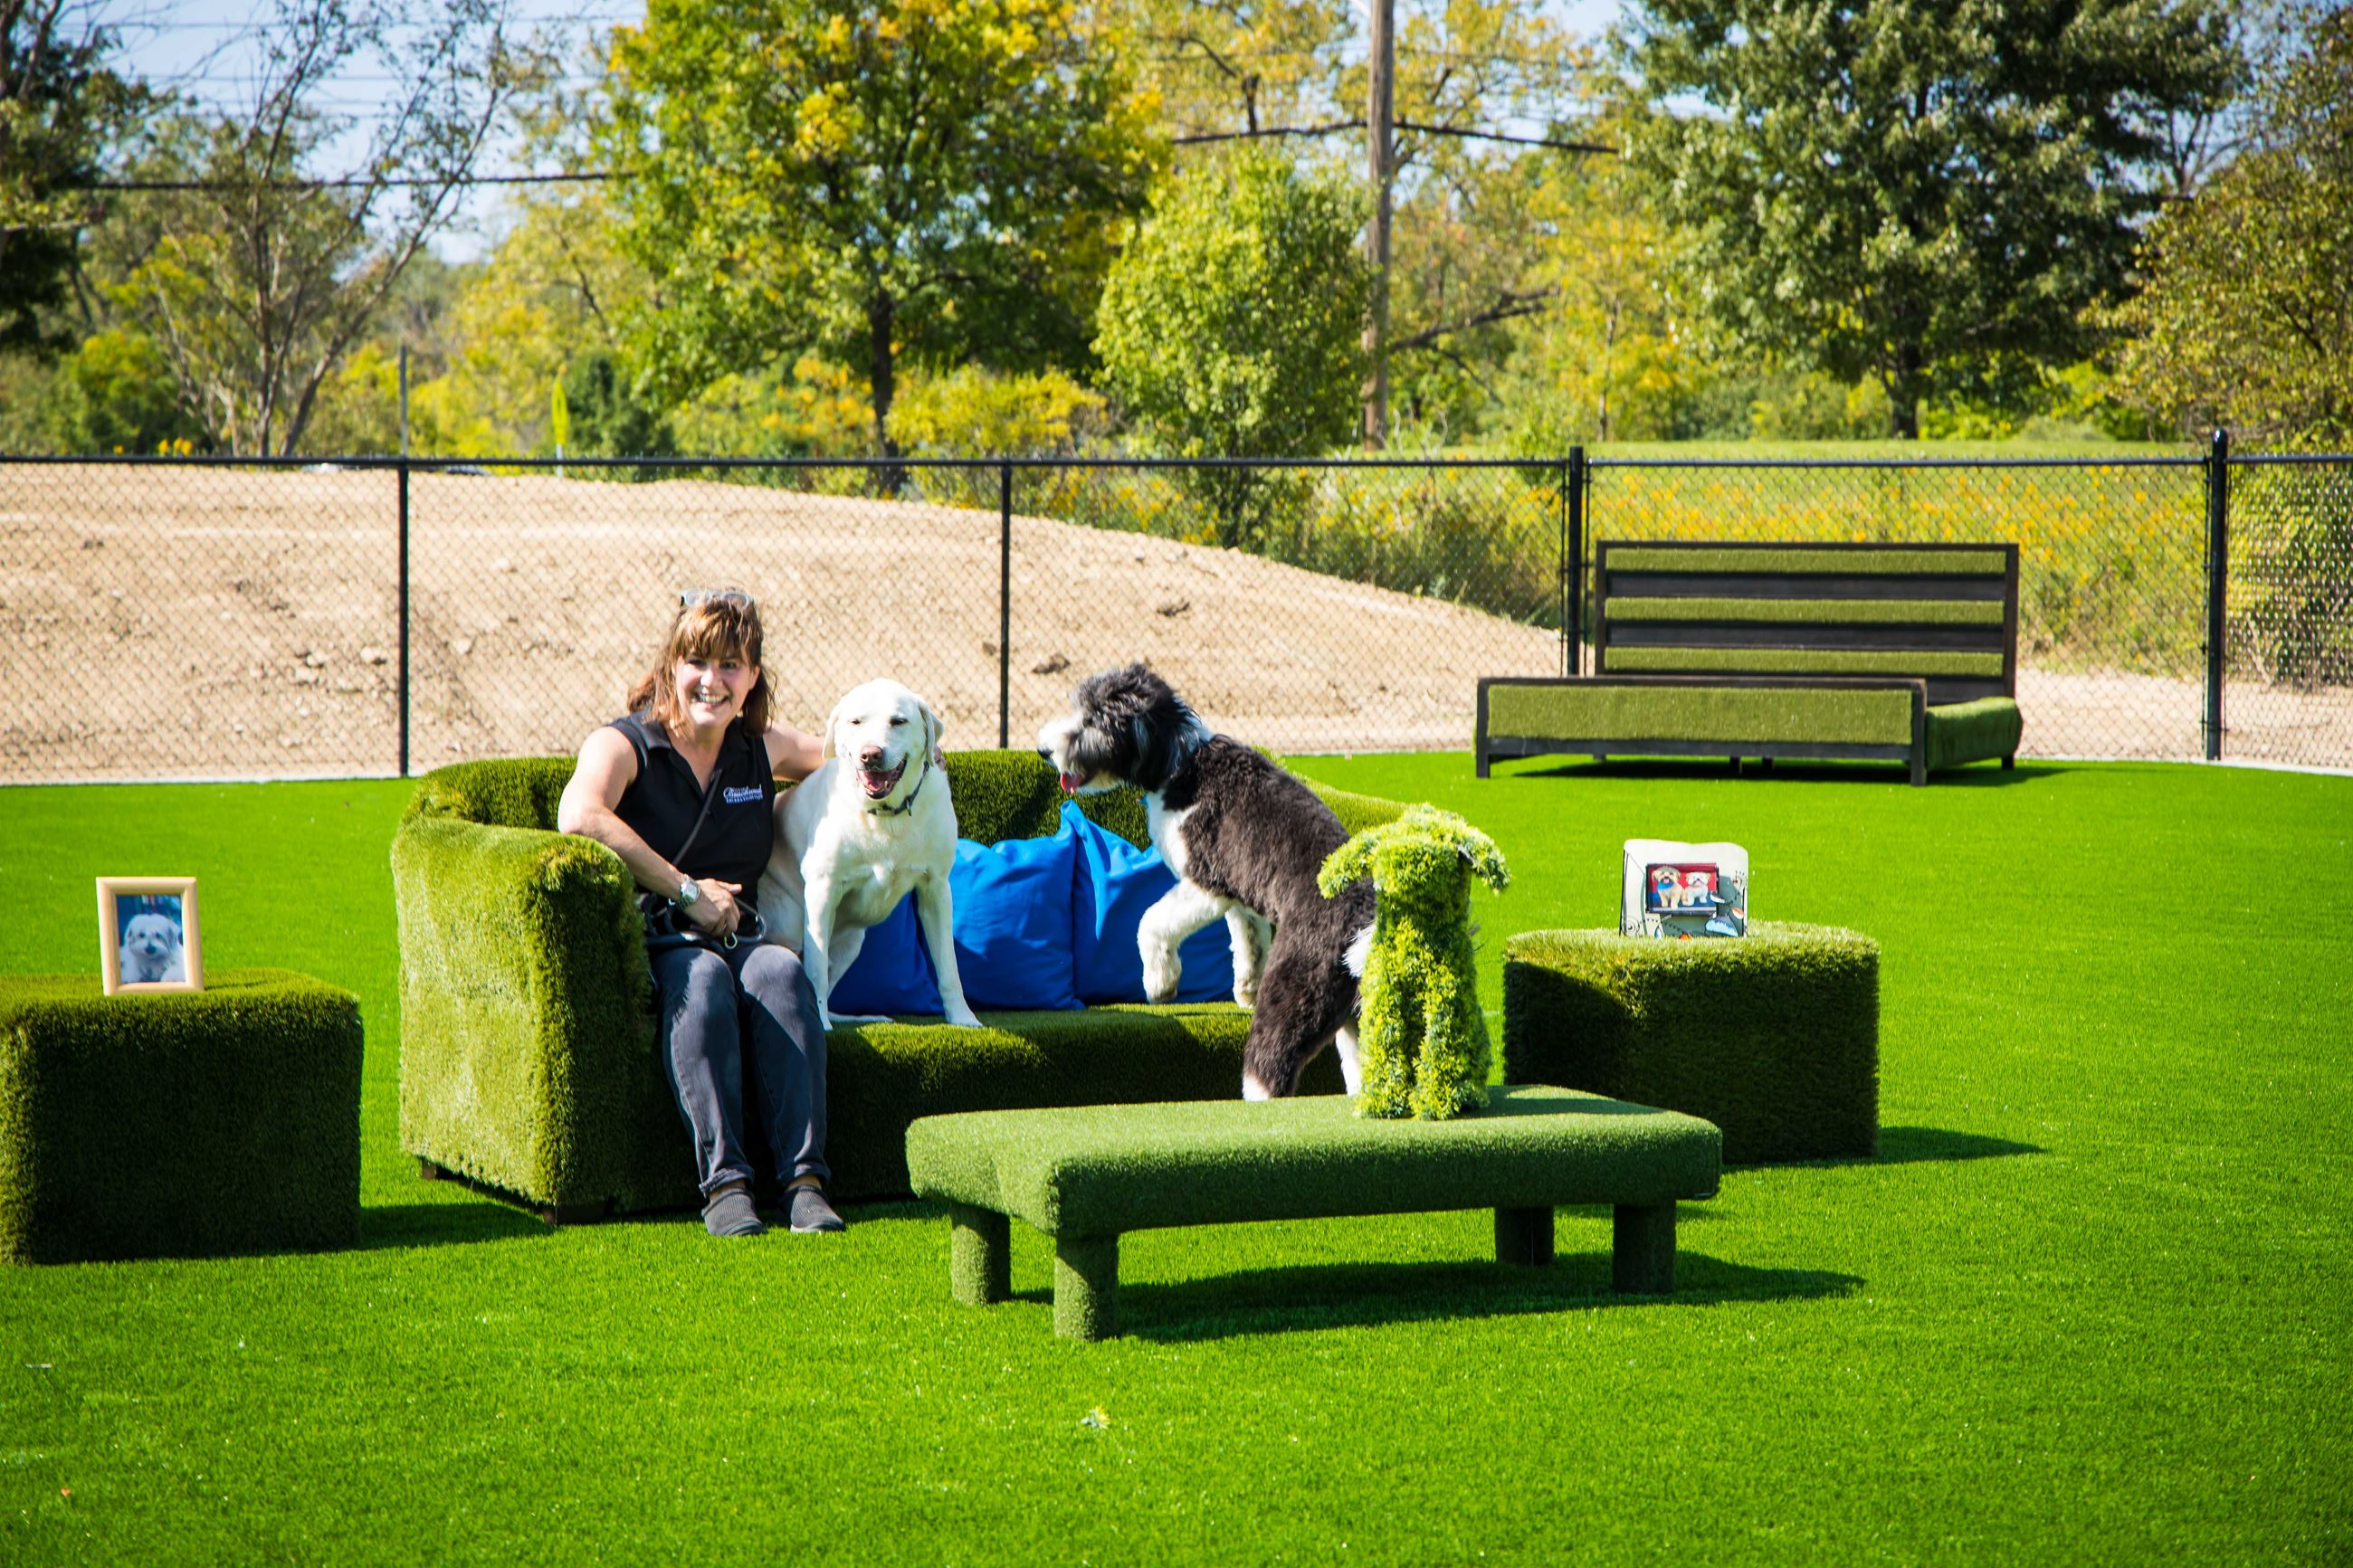 Barkwood patron and two dogs enjoy the turf-covered sofa